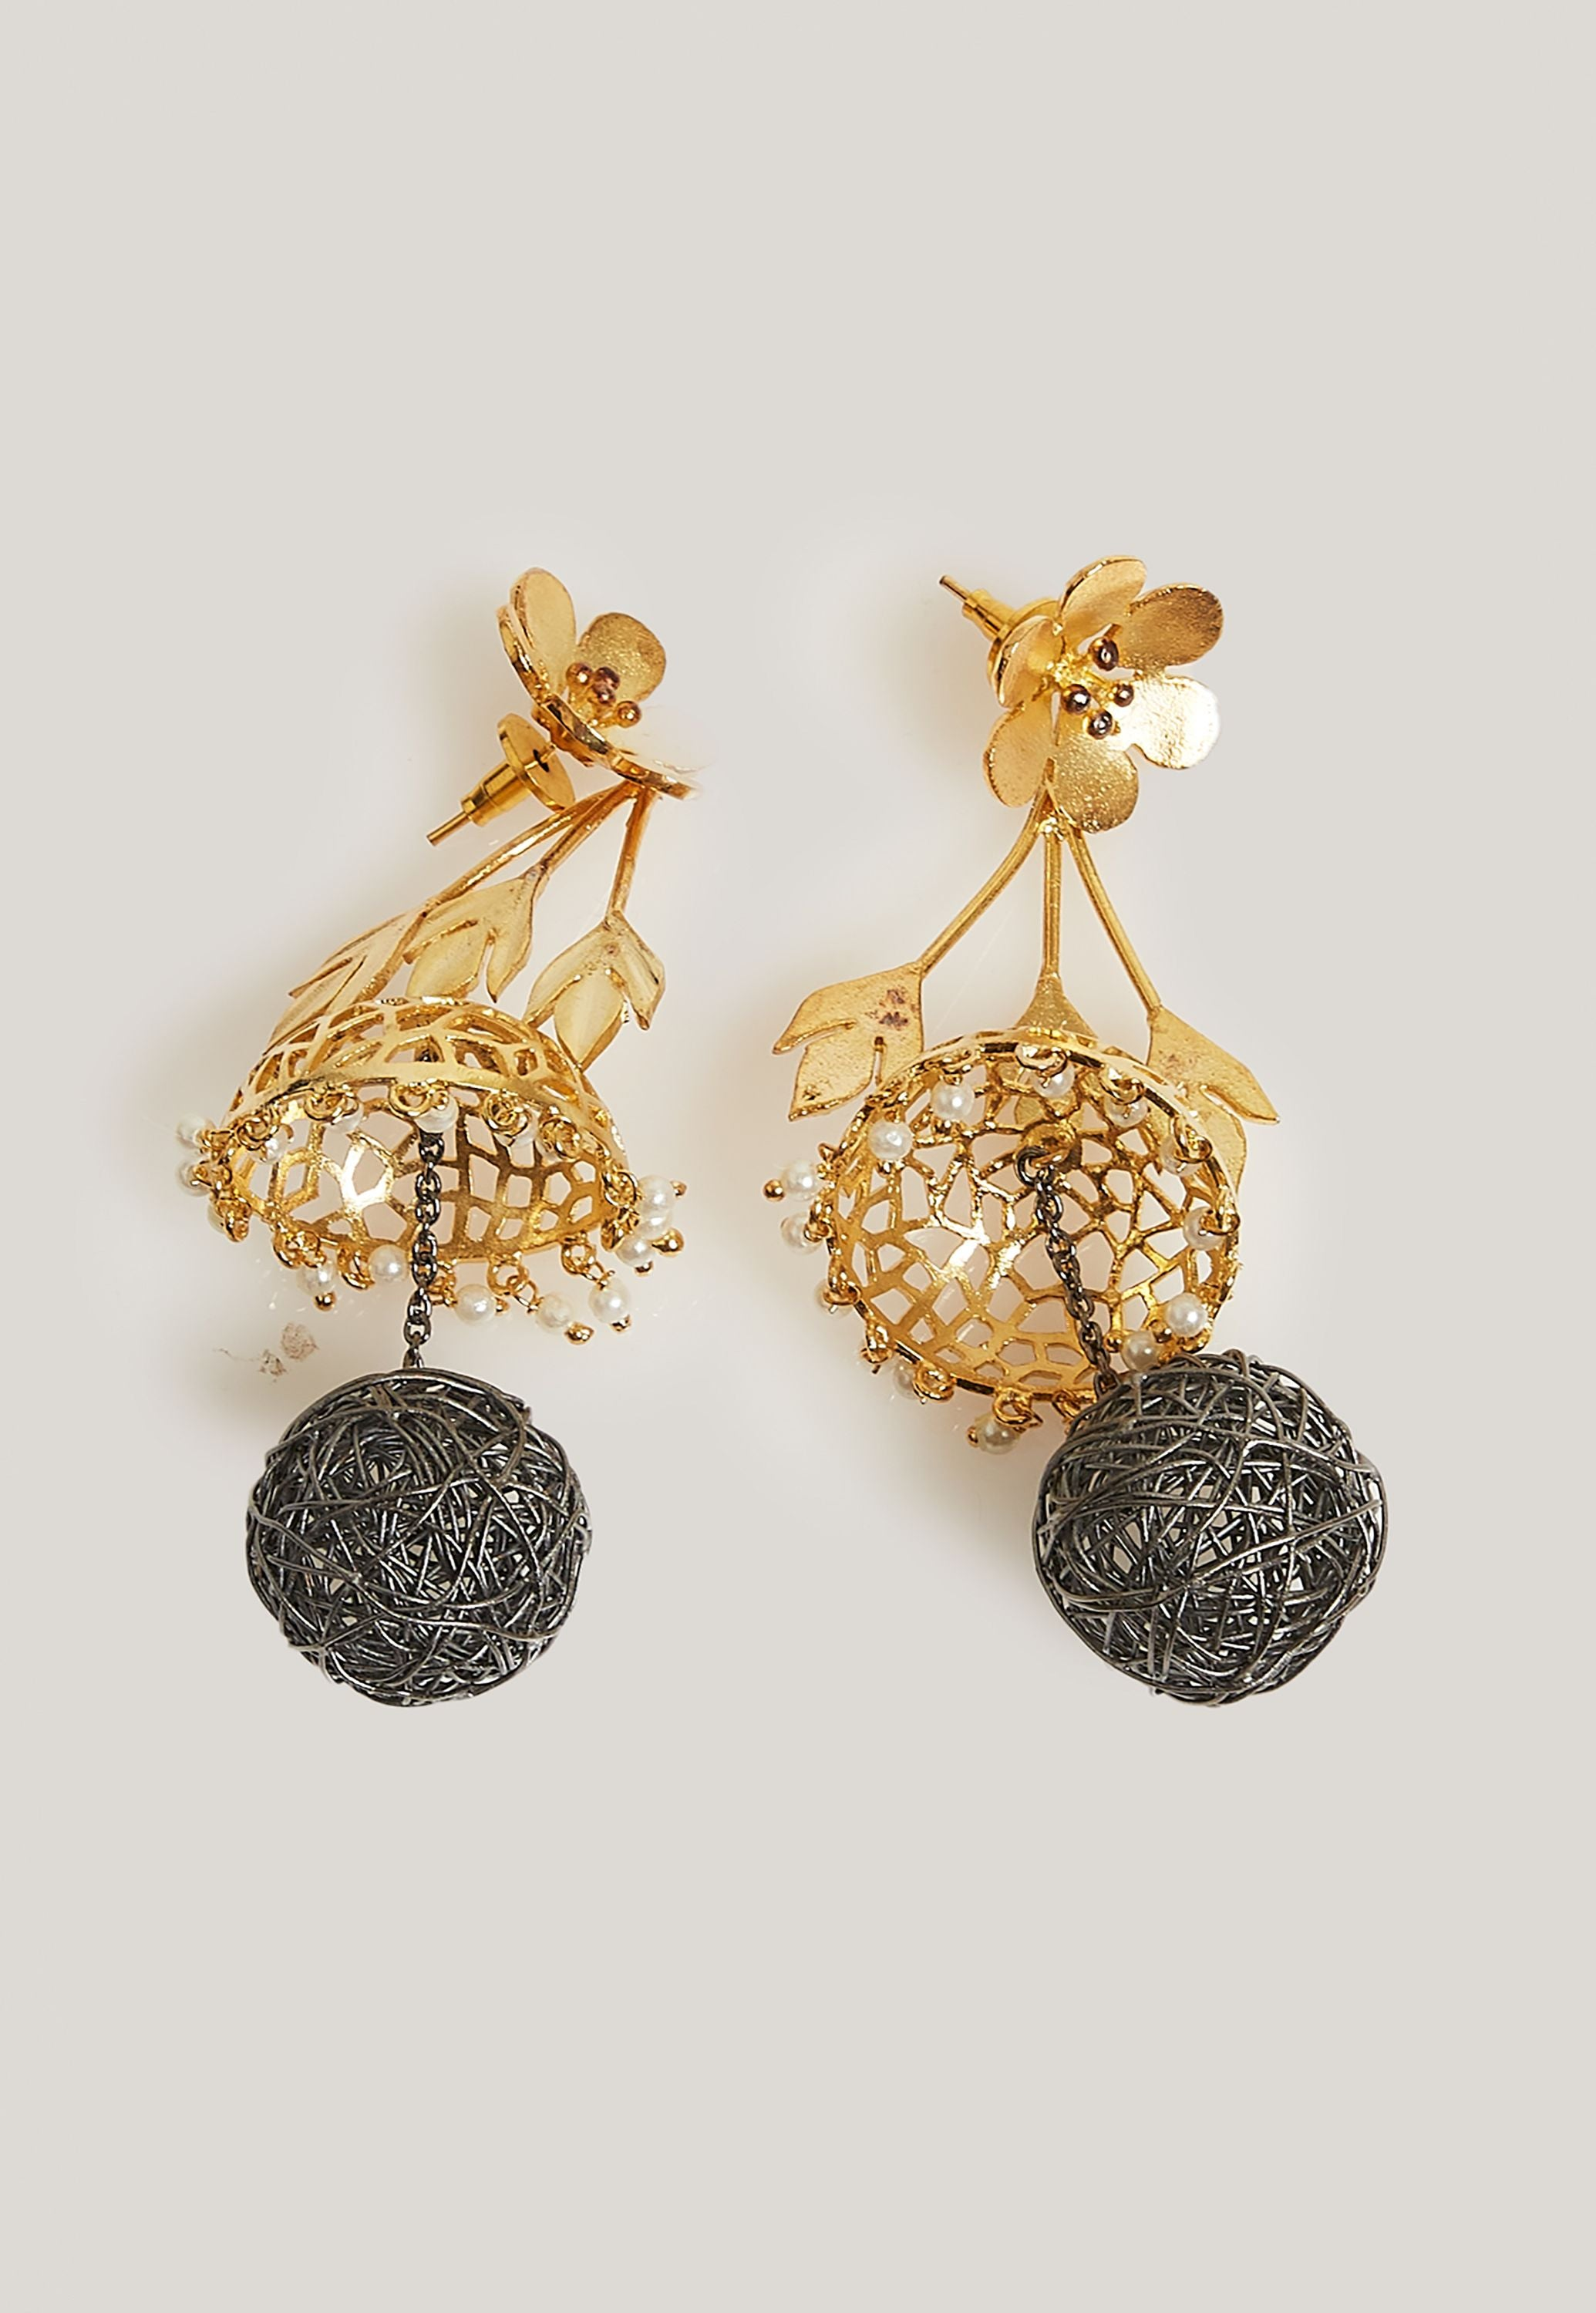 GOLD AND BLACK METAL EARRINGS WITH PEARLS